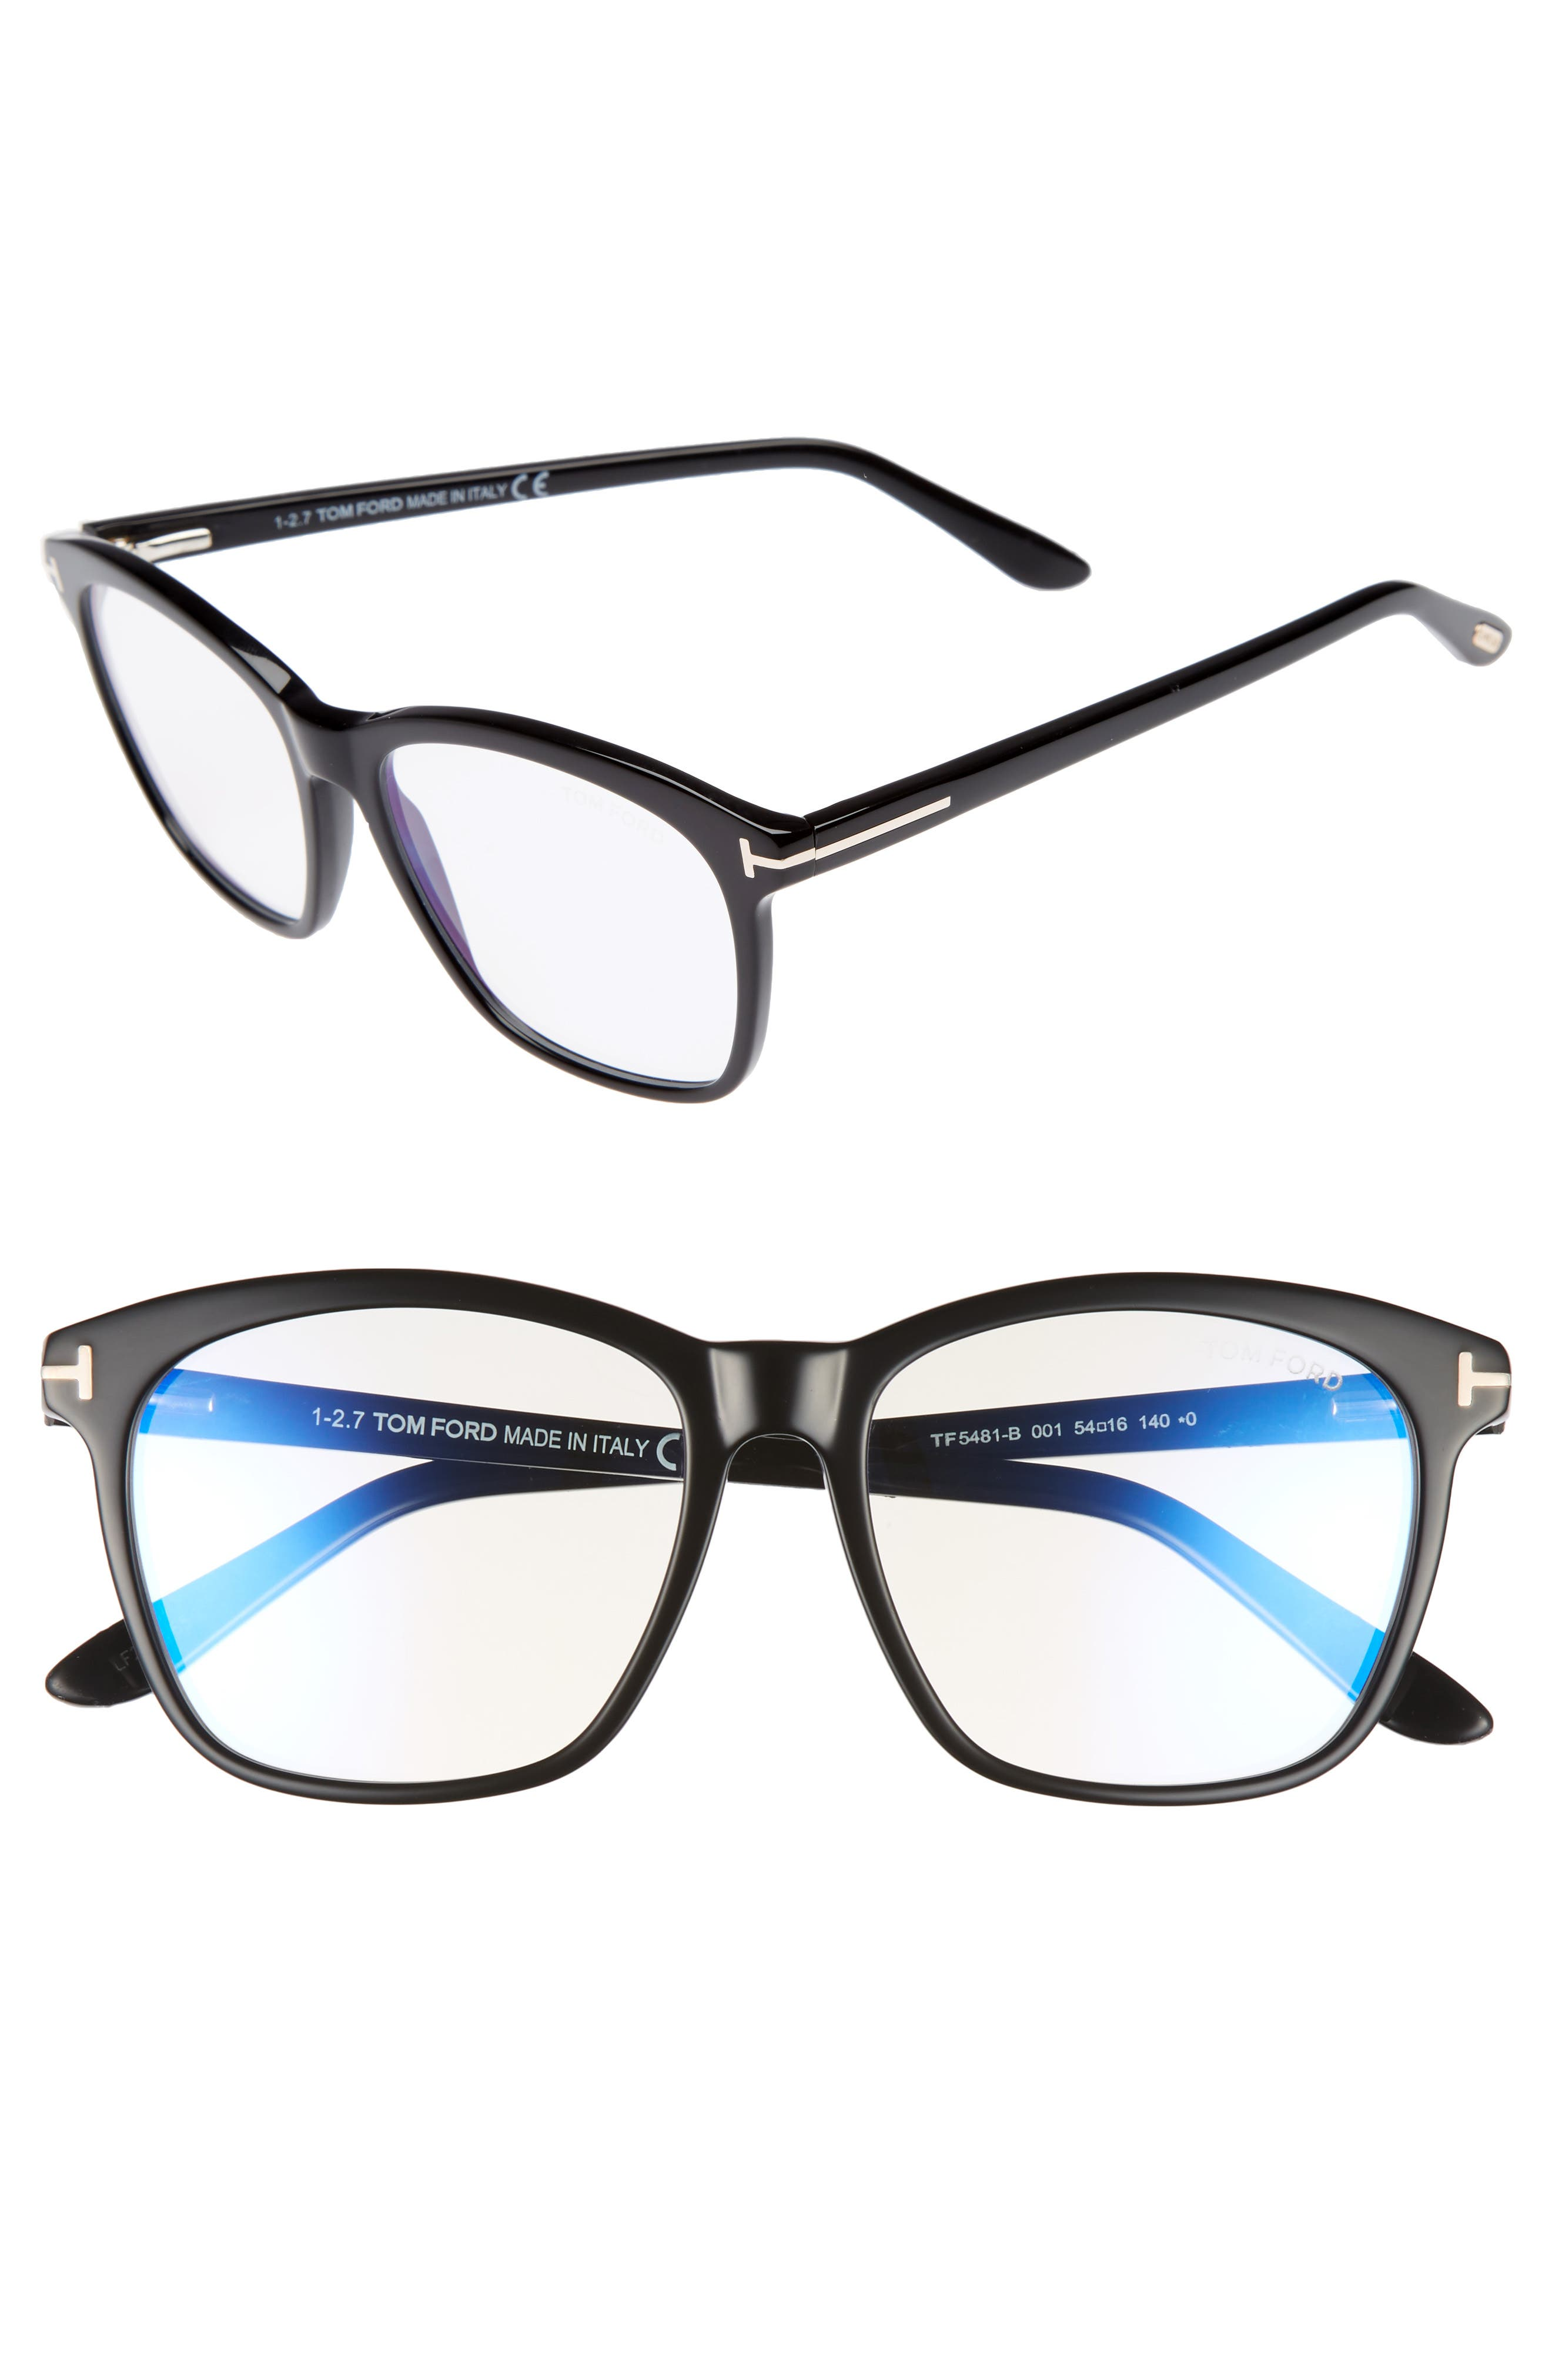 54mm Blue Block Optical Glasses,                         Main,                         color, BLACK/ BLUE